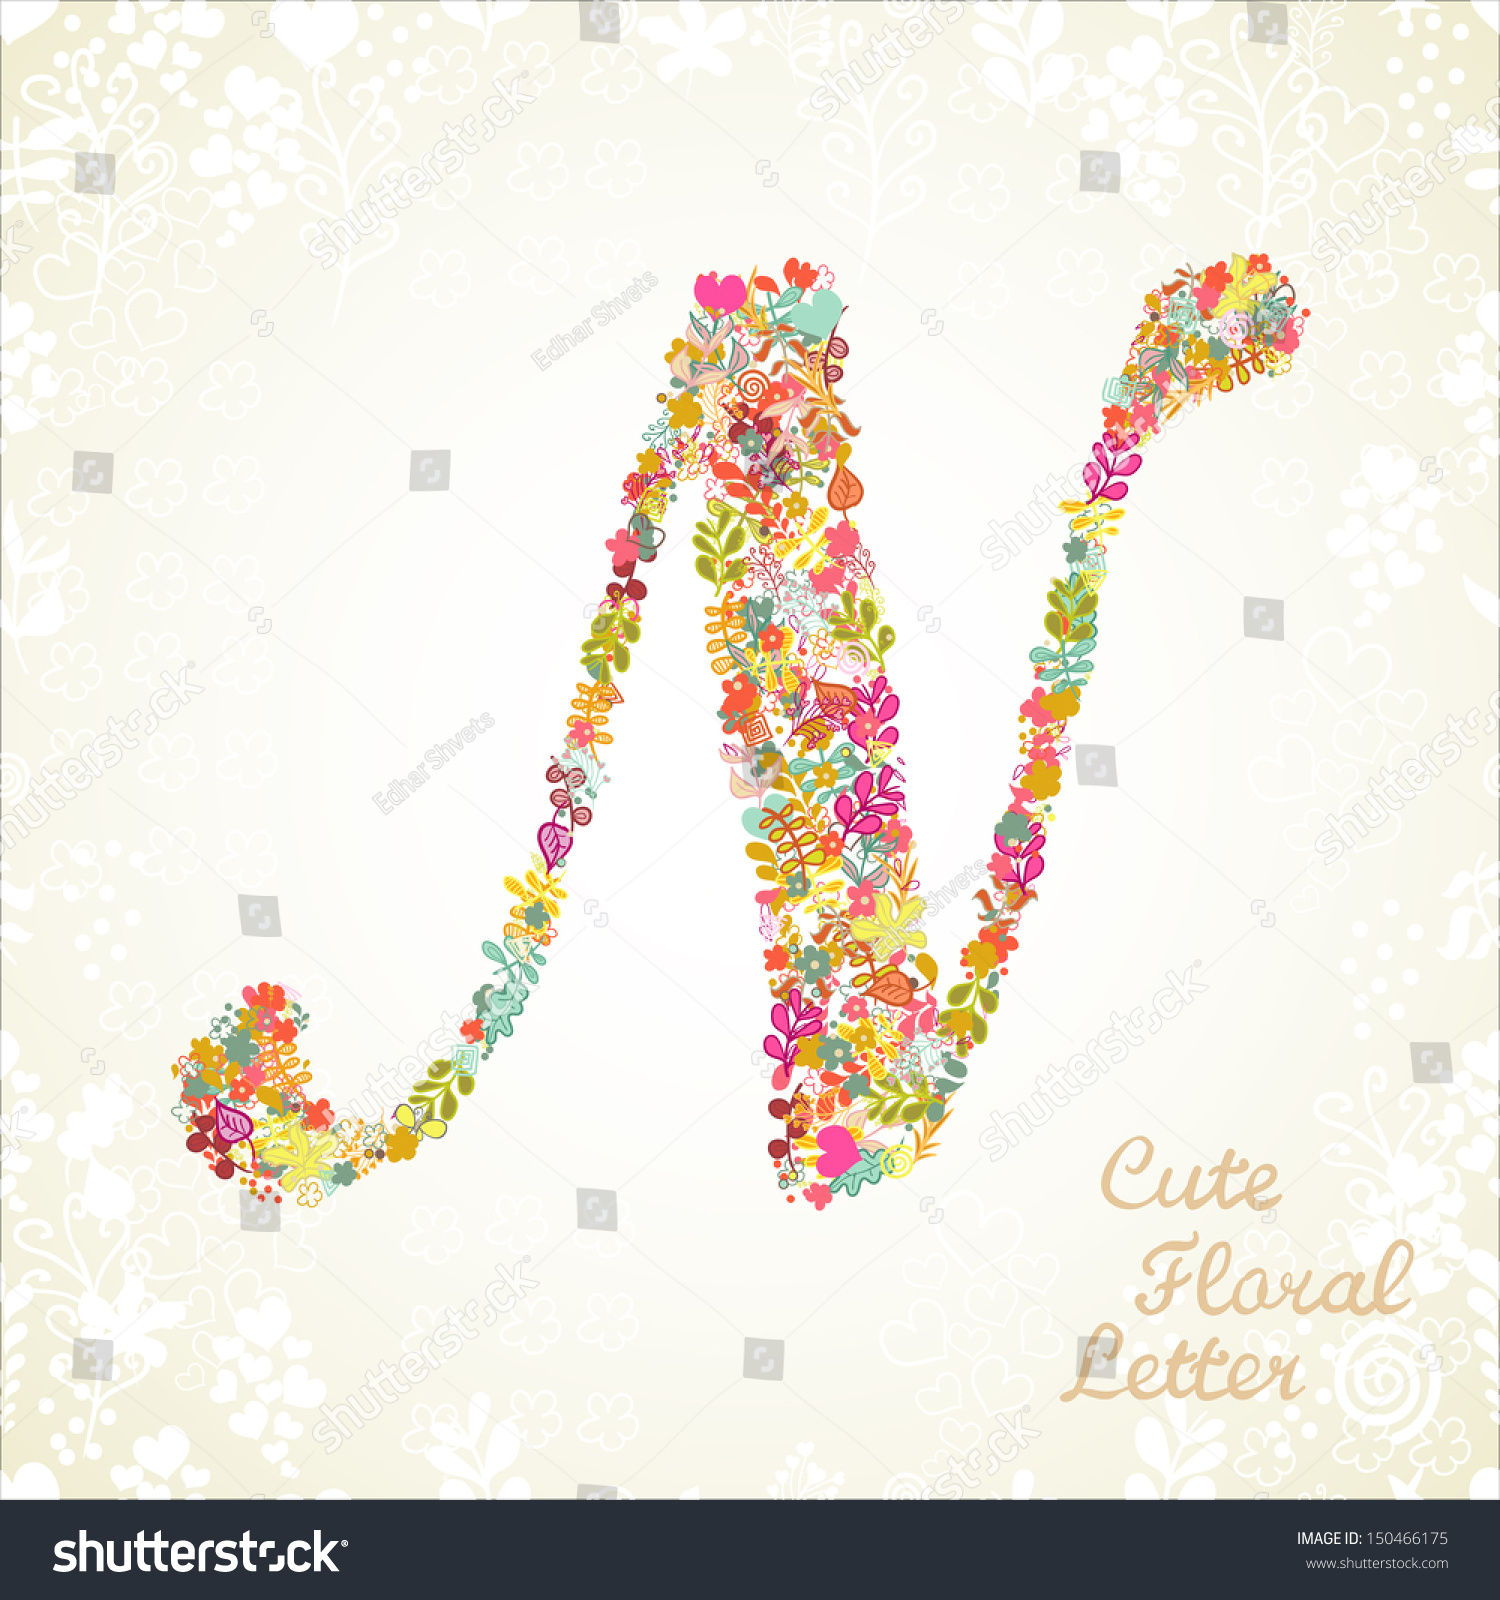 the letter n bright floral element of colorful alphabet made from flowers petals